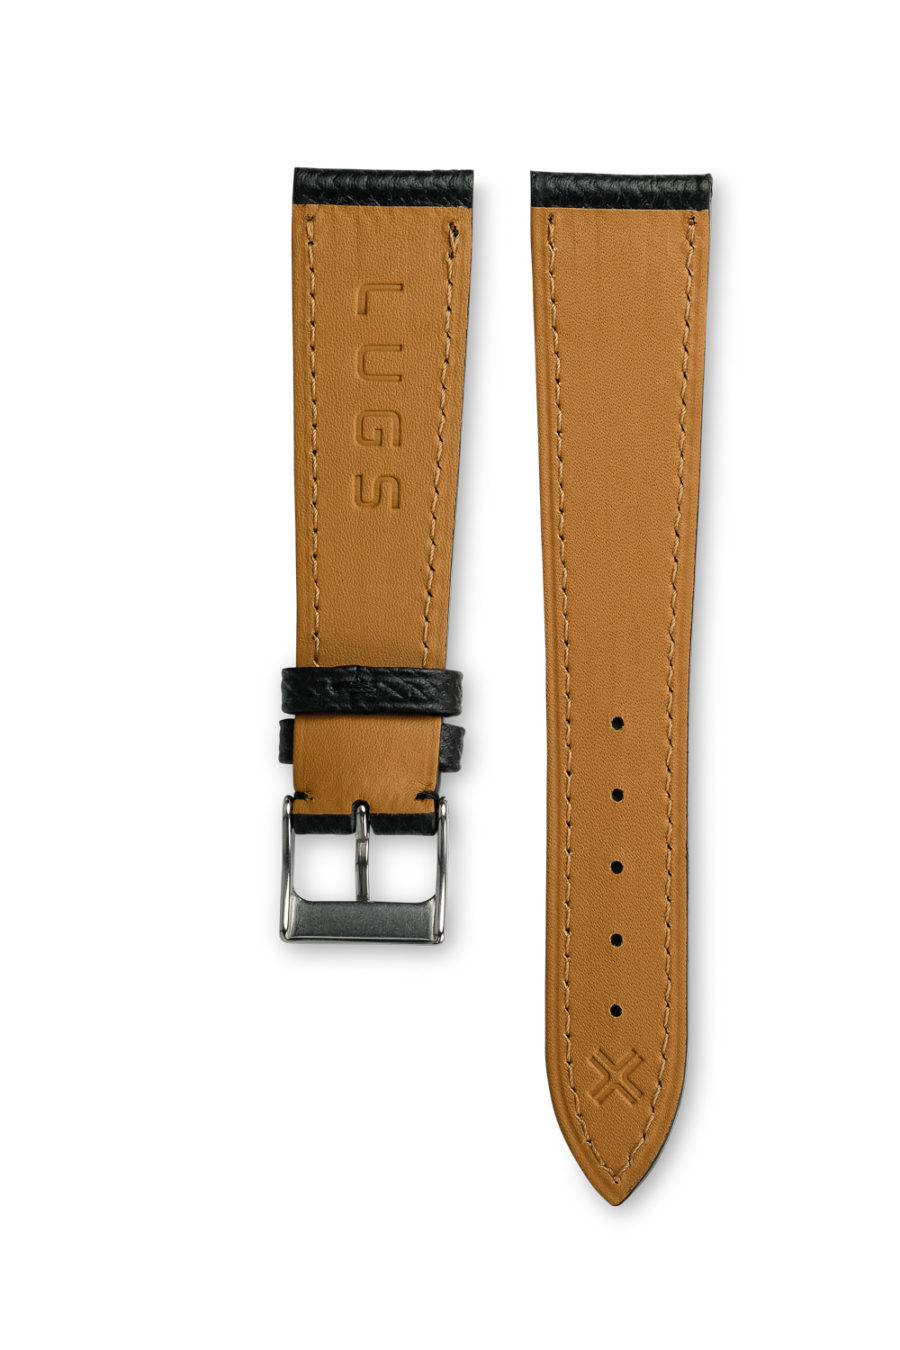 Grained Classic Barenia deep black leather watch strap - tone on tone stitching - LUGS brand